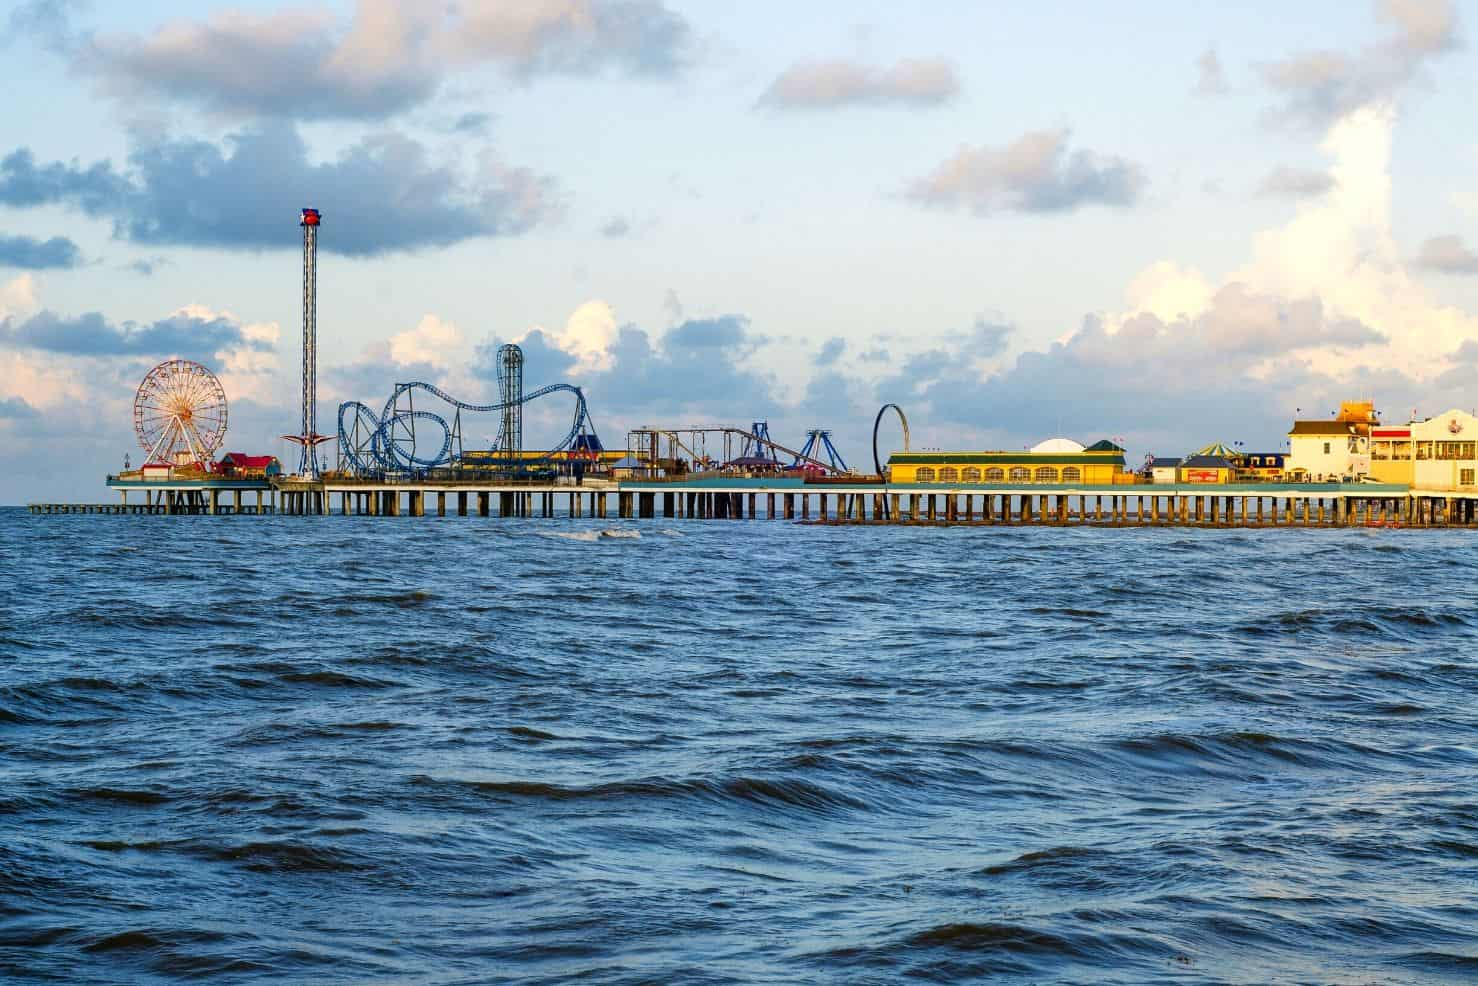 A beautiful blue ocean with the Galveston Pleasure Pier in the background.